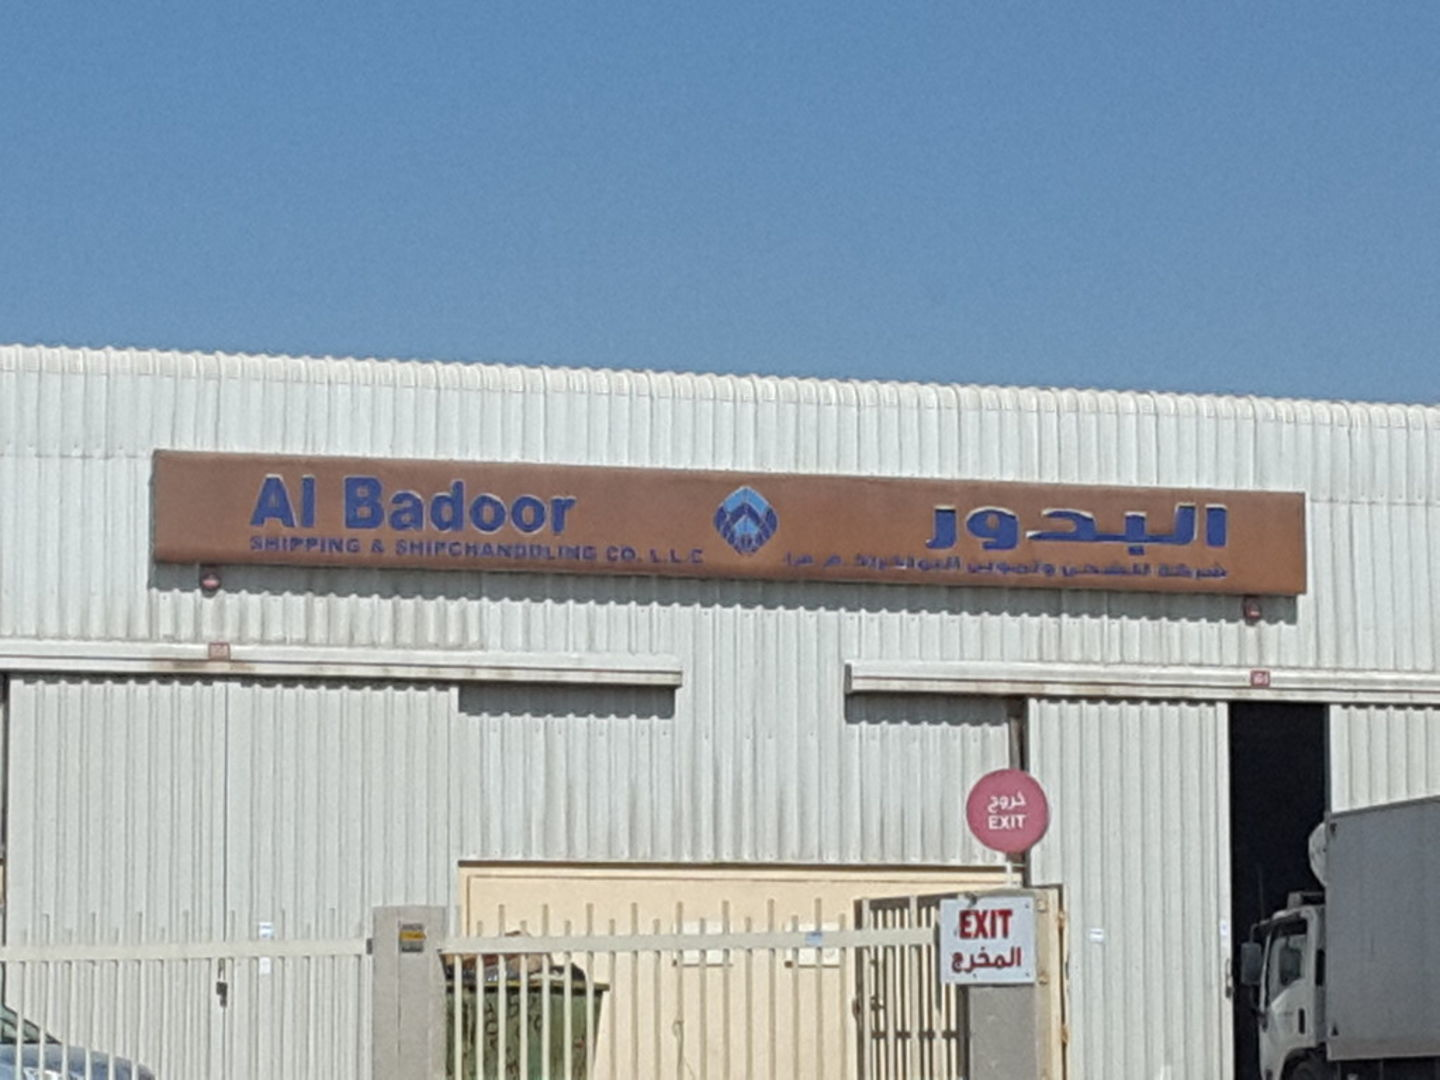 HiDubai-business-al-badoor-shipping-shipchanddling-co-food-beverage-catering-services-dubai-investment-park-1-dubai-2